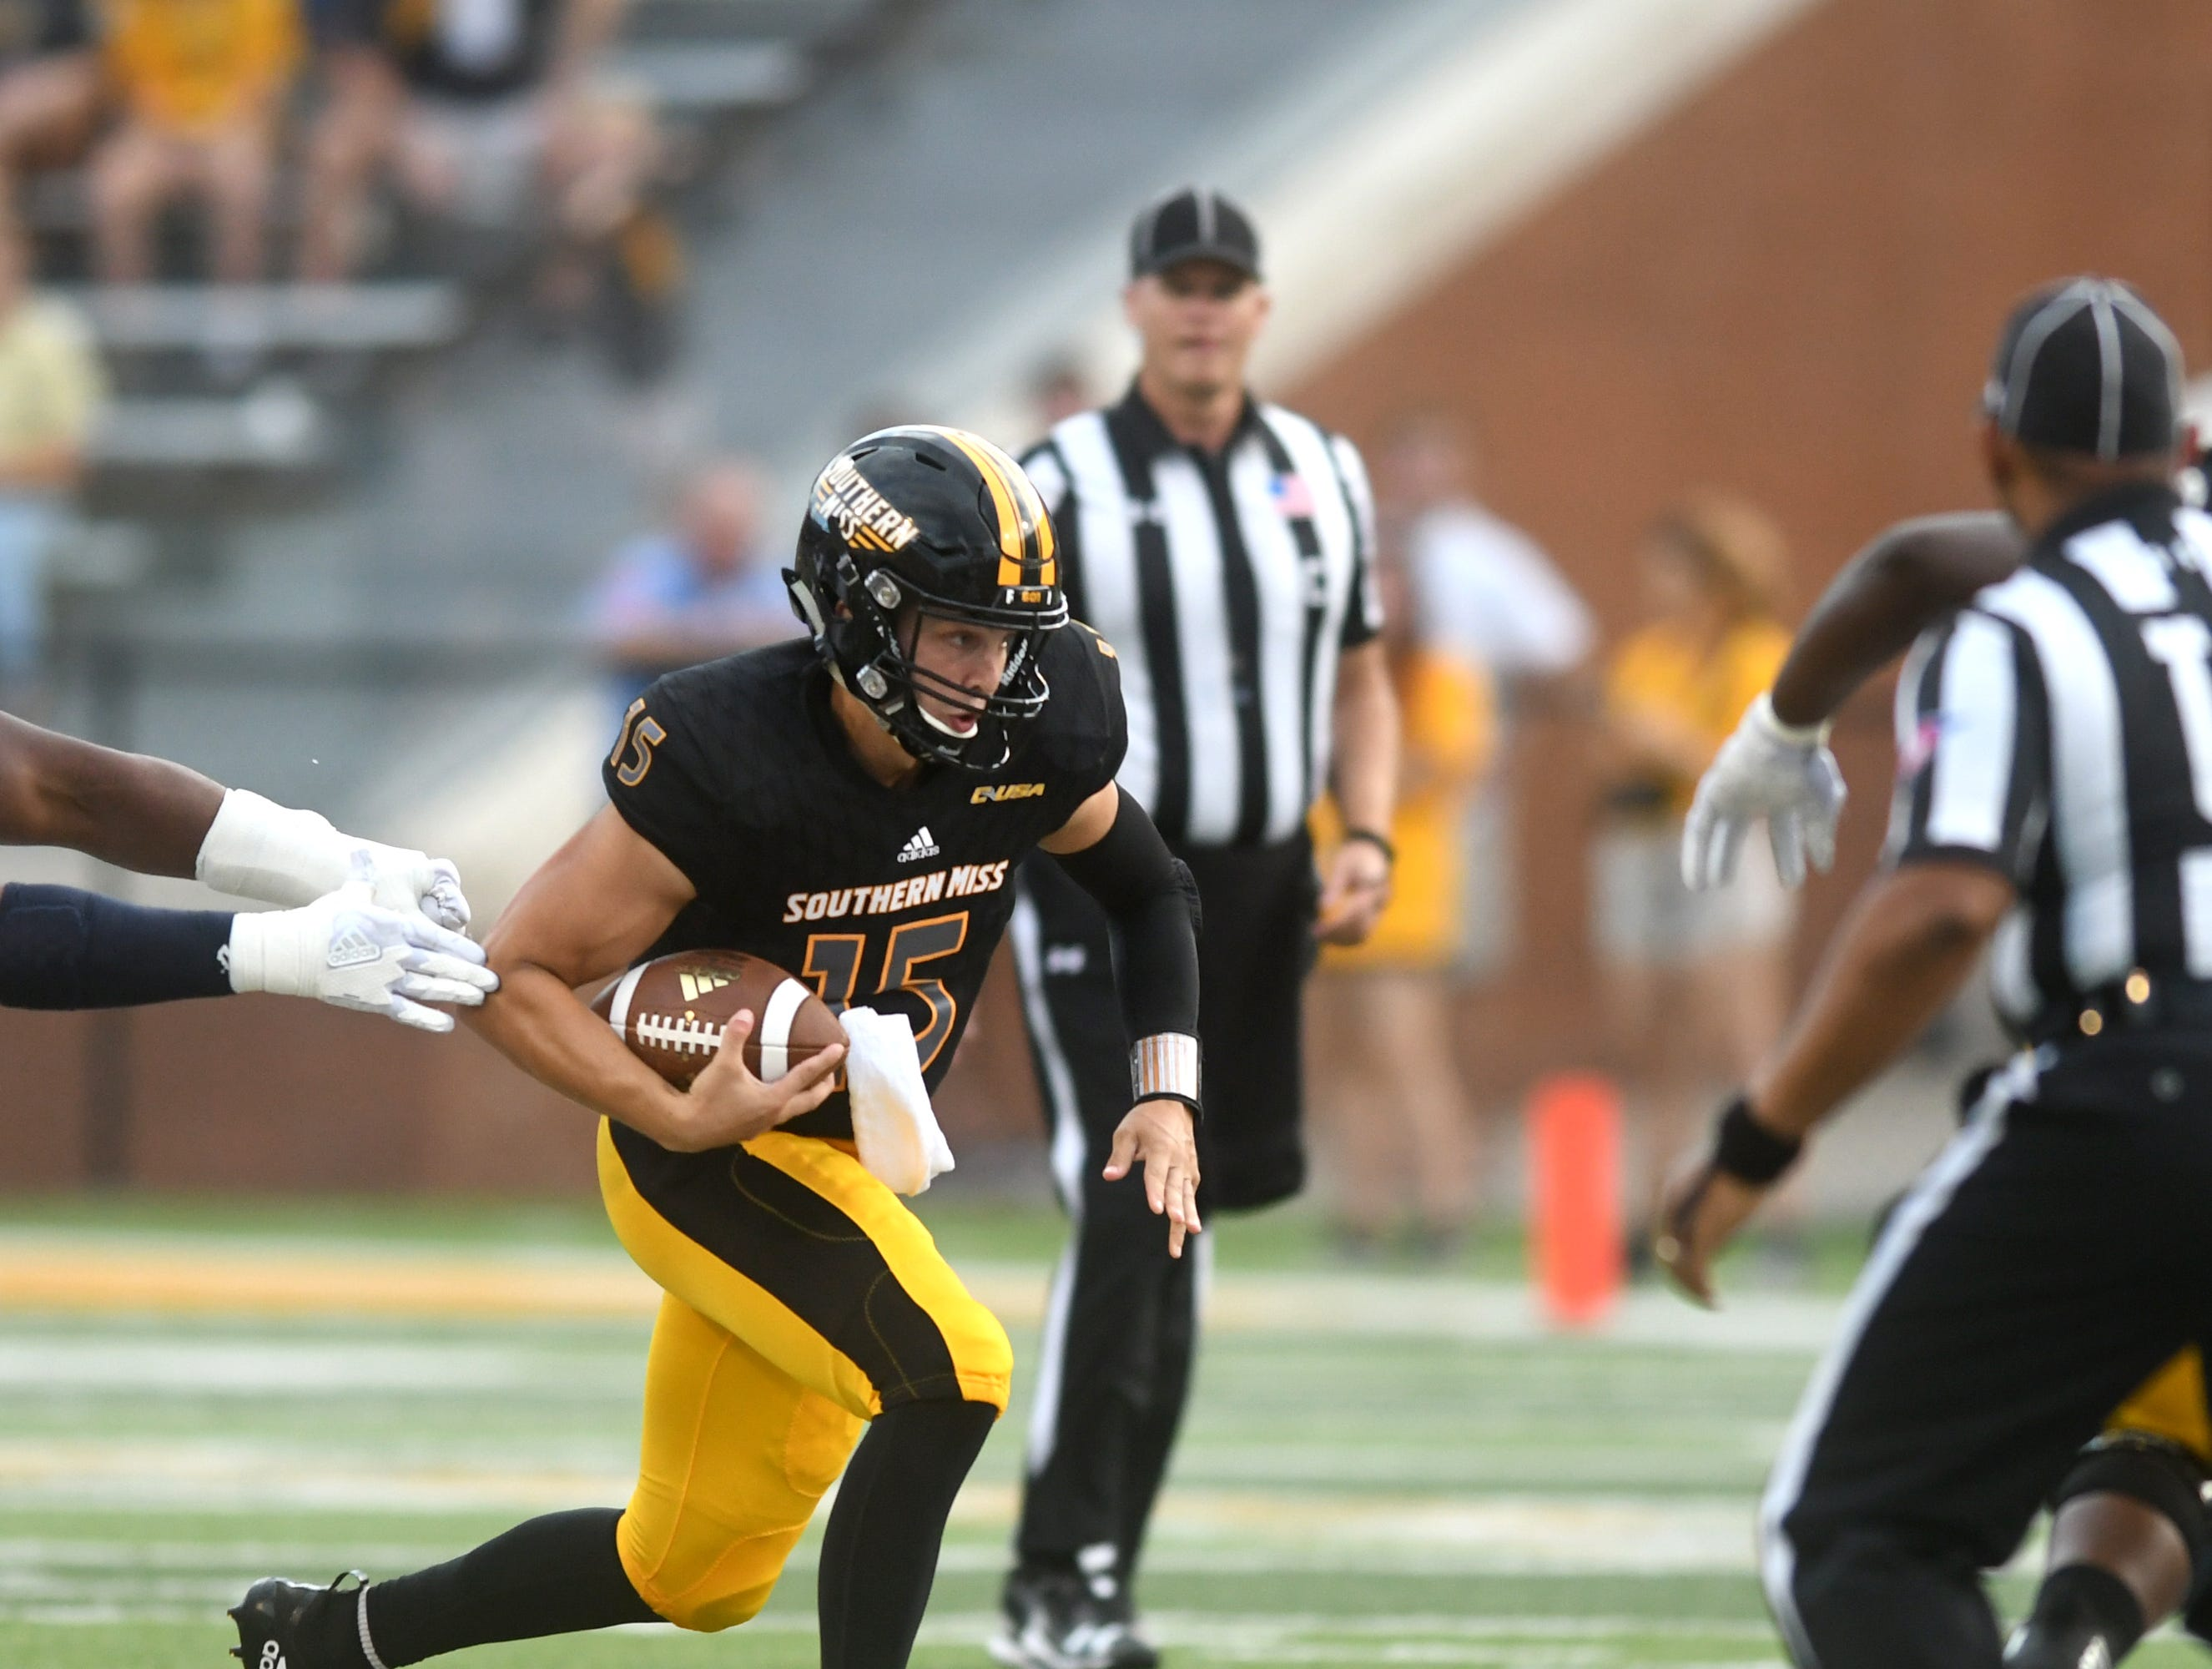 Southern Miss quarterback Jack Abraham carries the ball in a game against Rice at M.M. Roberts Stadium on Saturday, September 22, 2018.